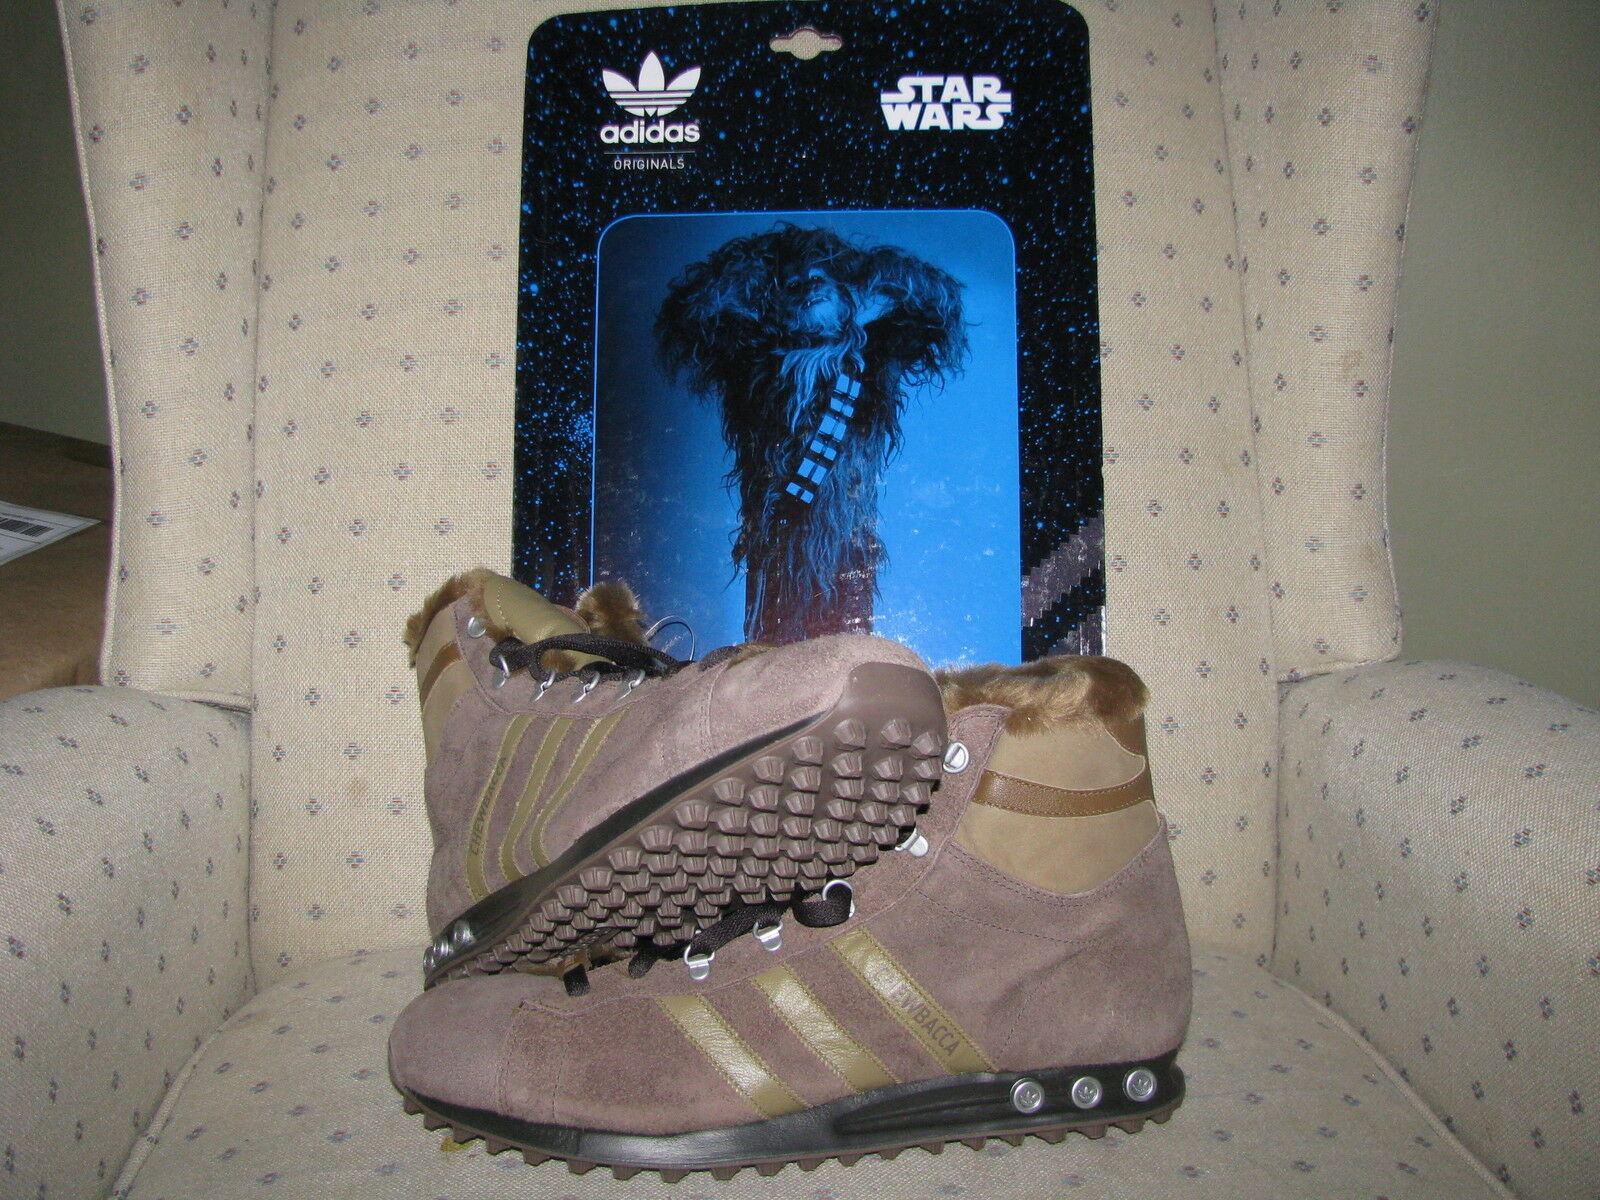 ADIDAS ORIGINALS STAR WARS CHEWBACCA WOOKIES Jogging Hi Han Solo Skywalker Vader